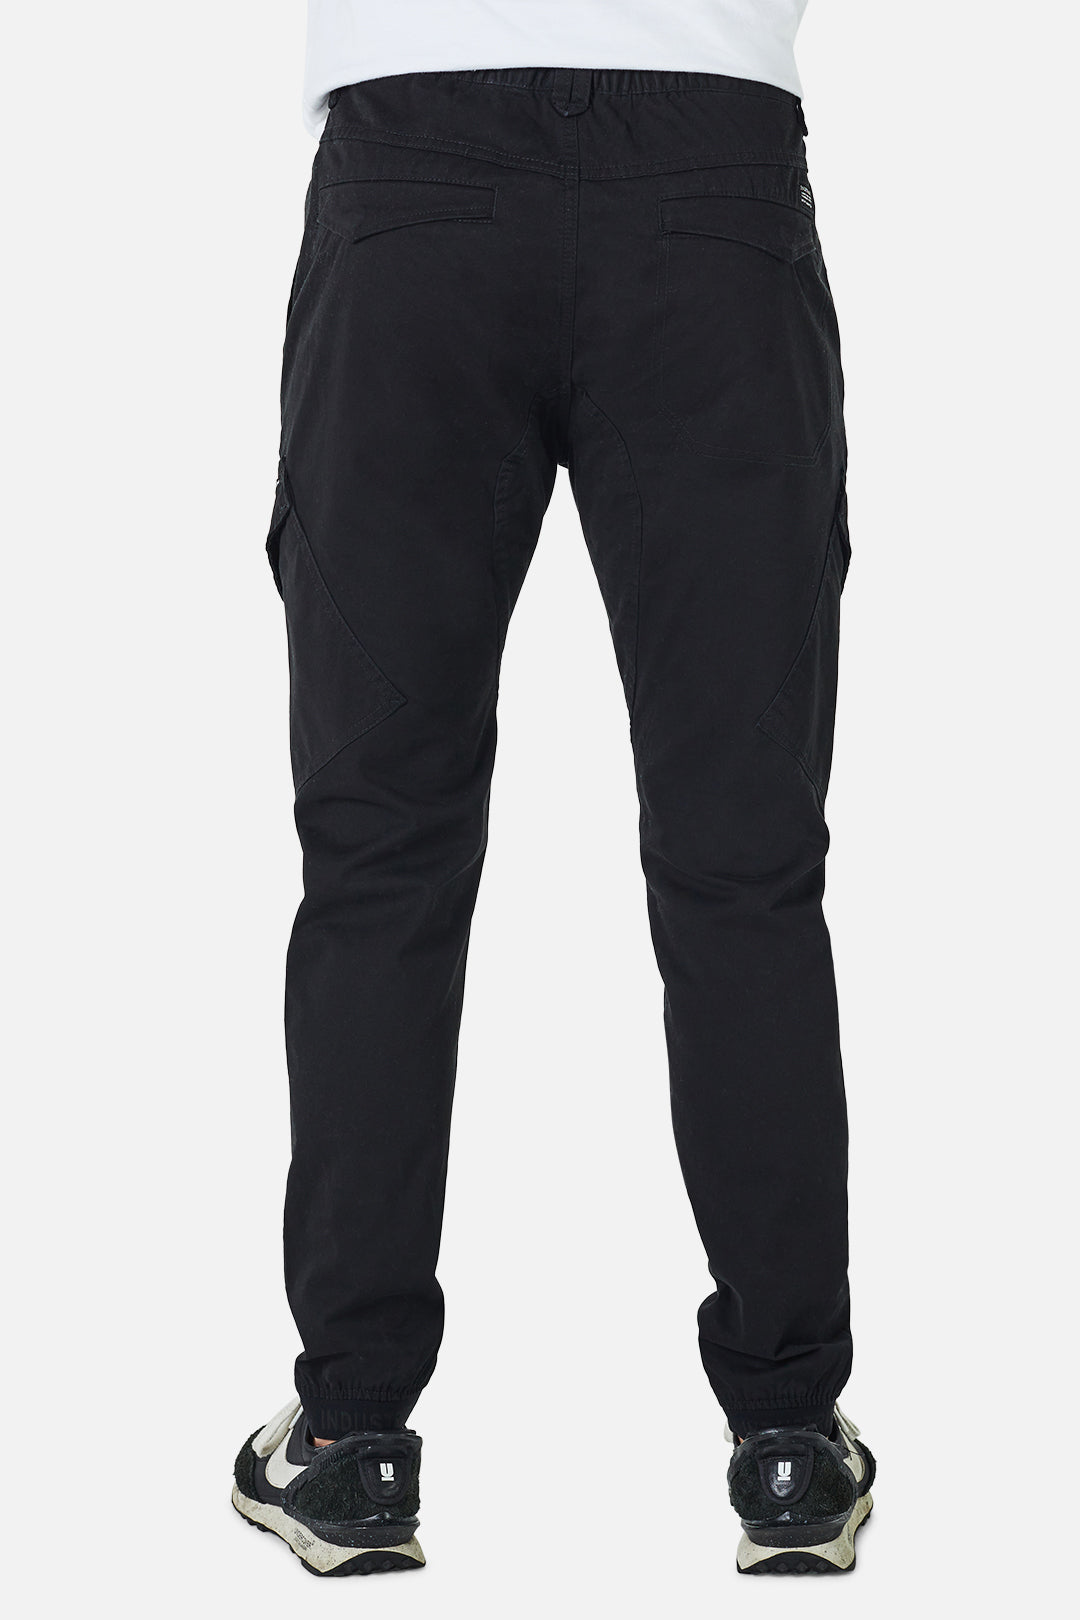 The Kano Combat Pant - Black